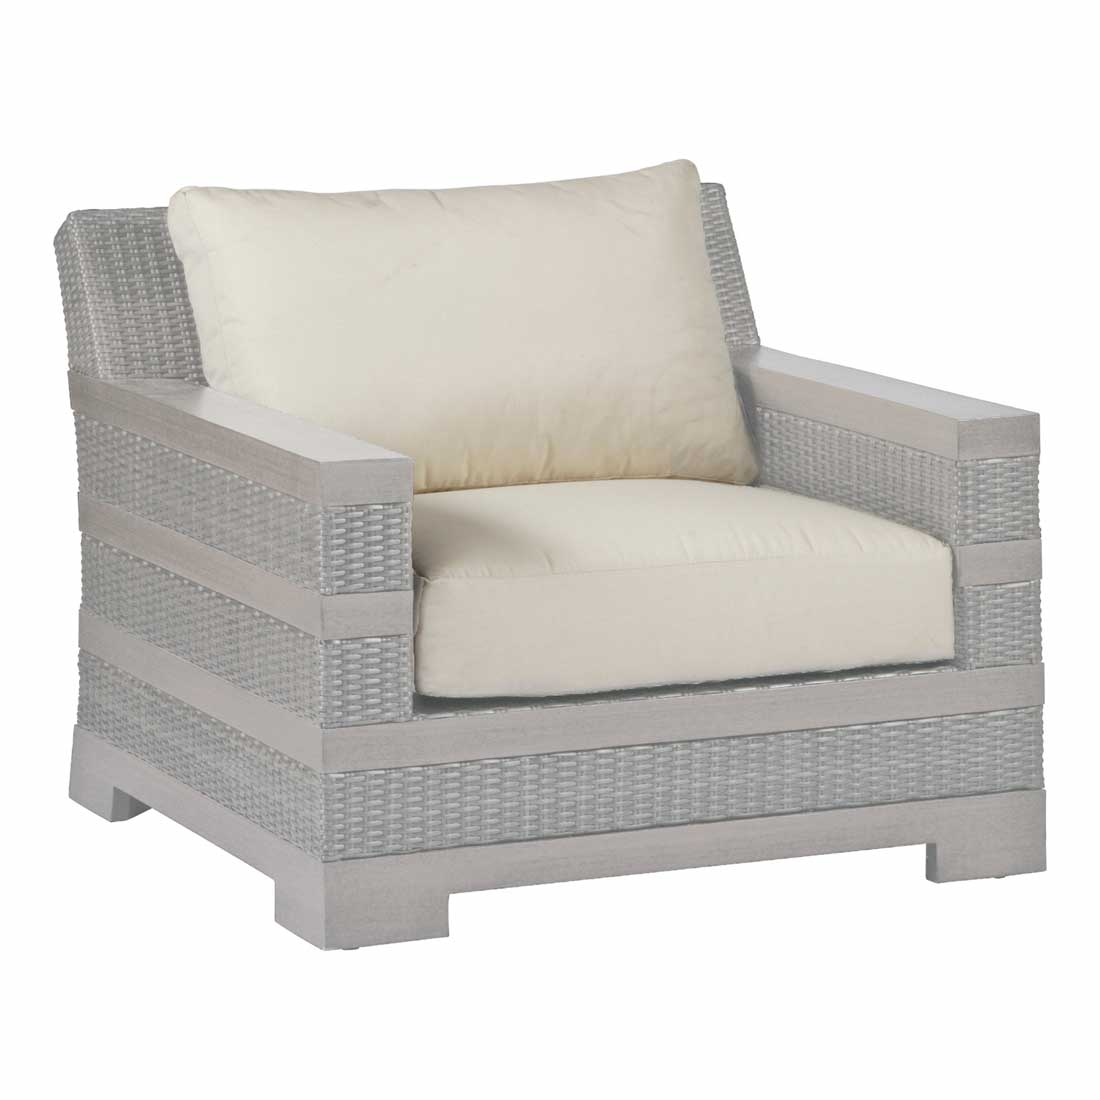 Sierra Resin Wicker Chaise Lounges